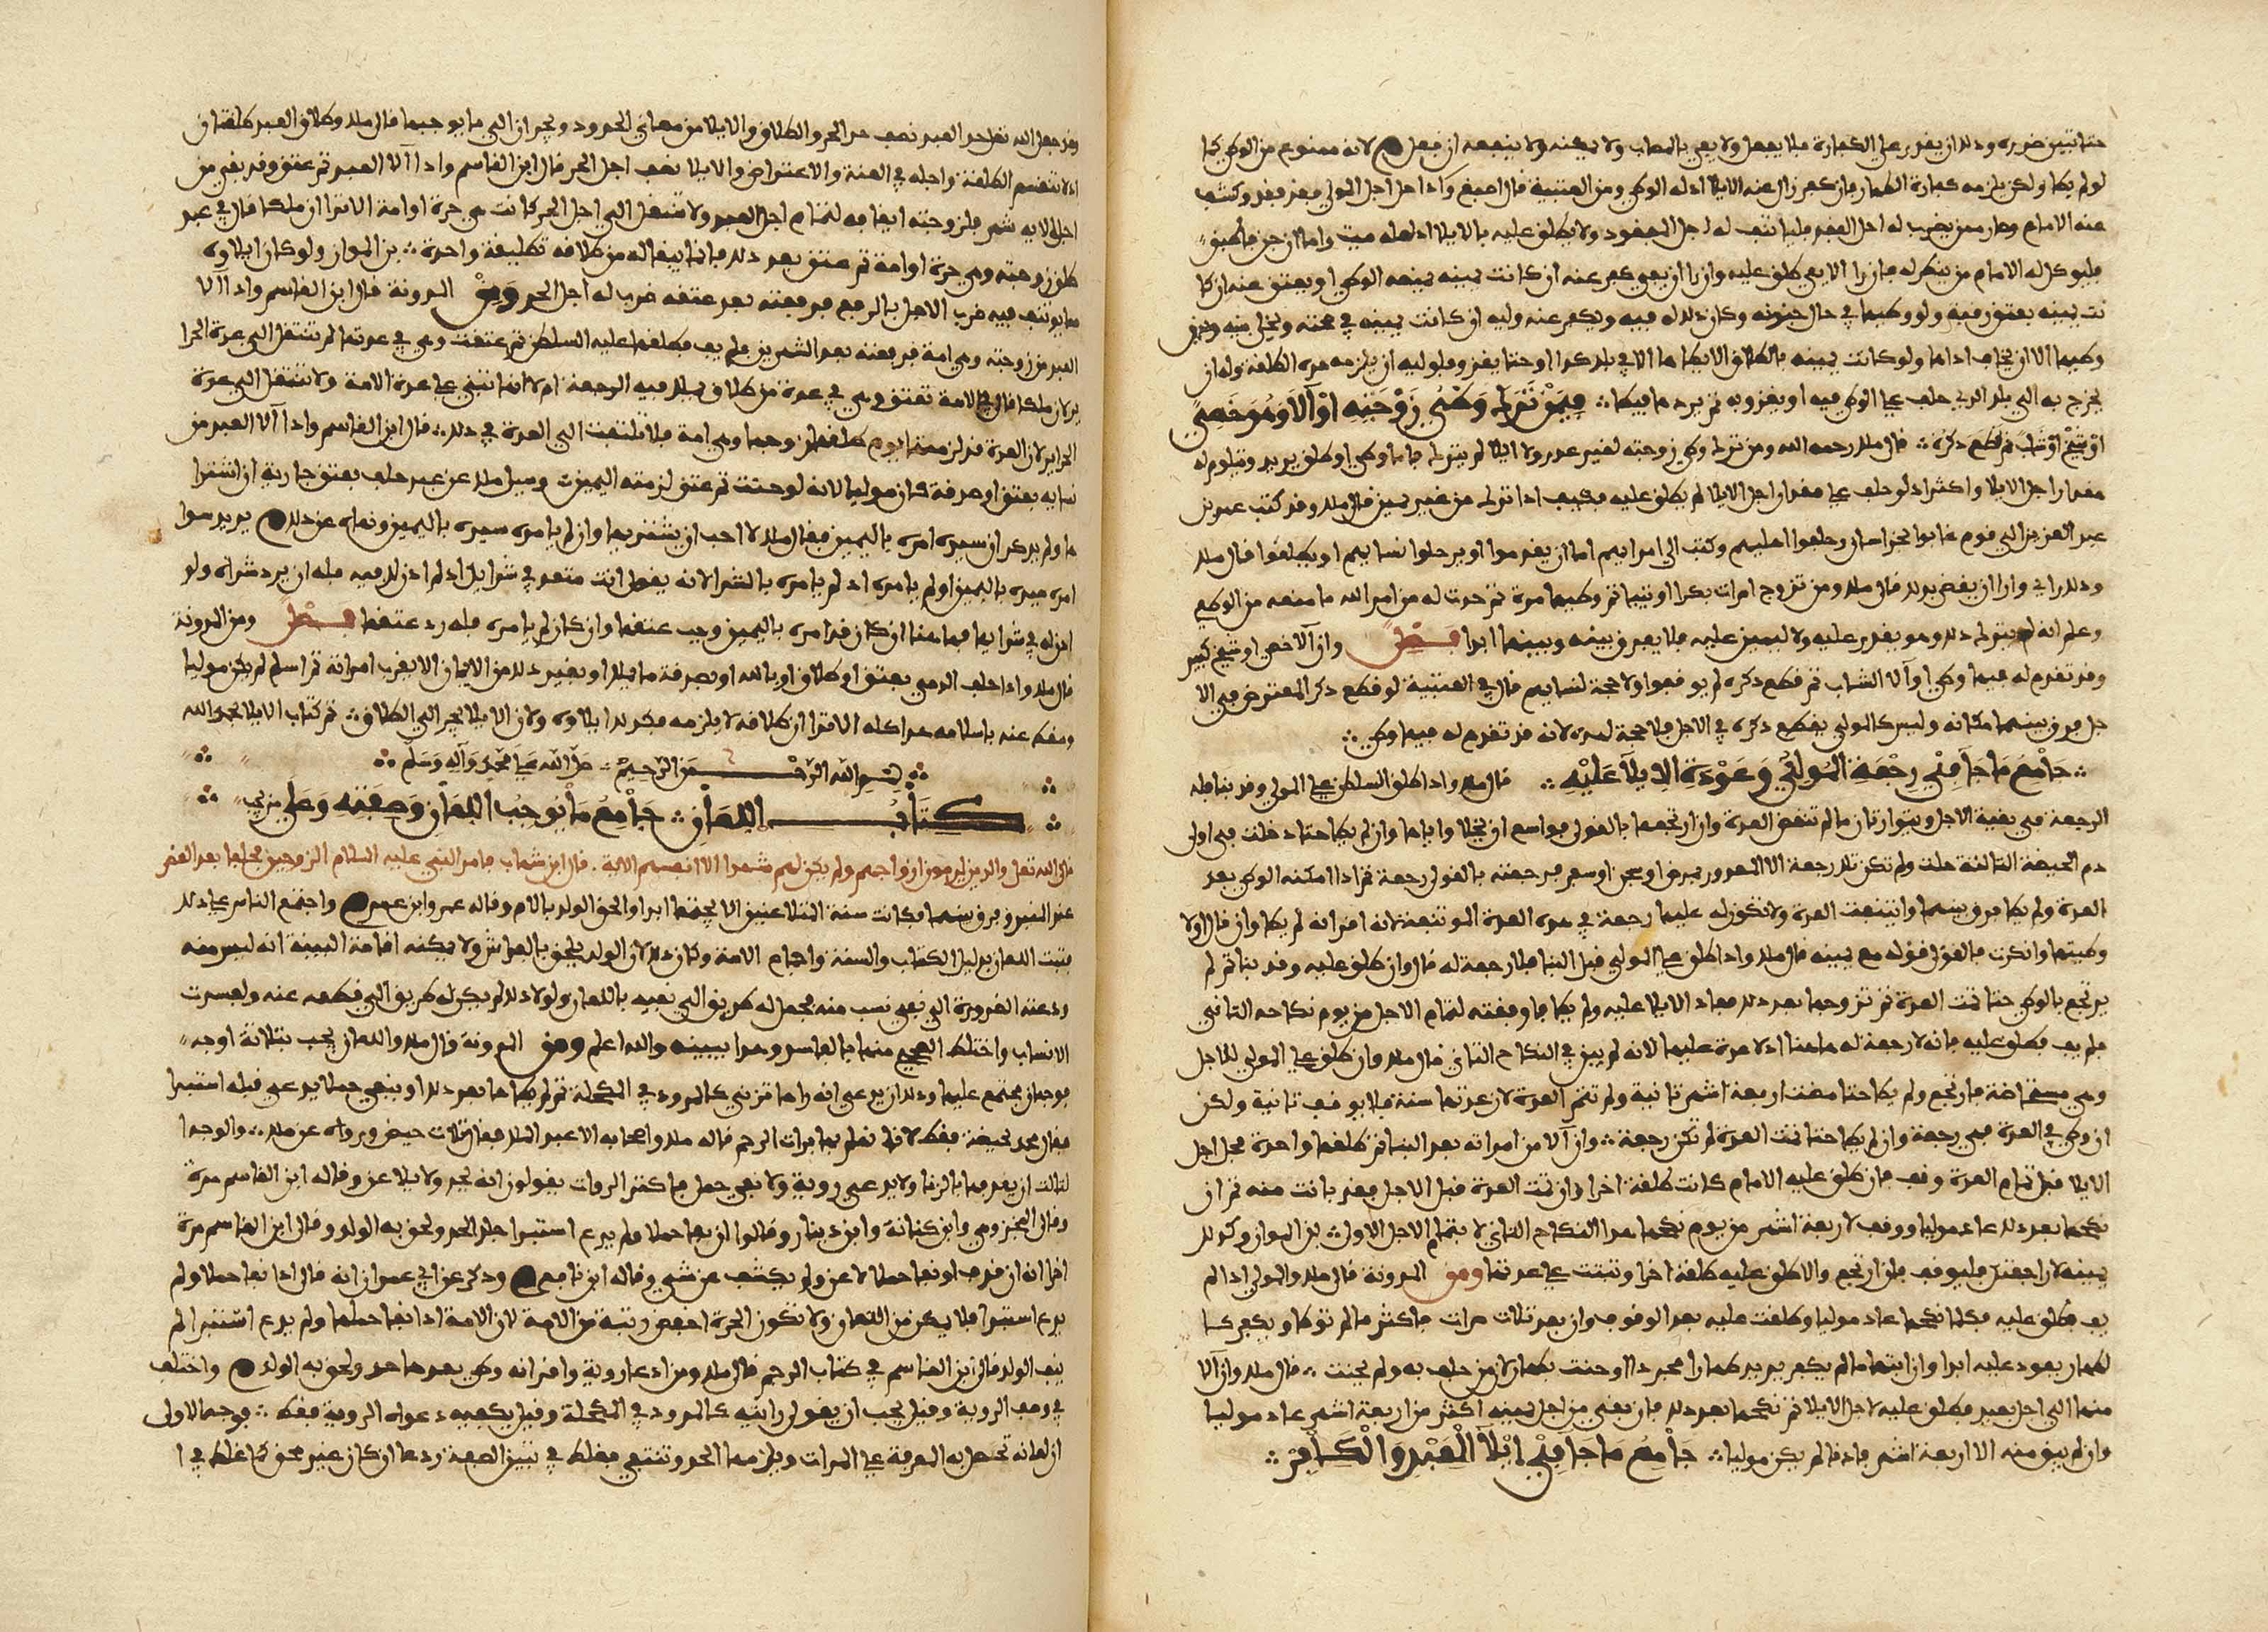 A TREATISE ON FIQH, POSSIBLY I